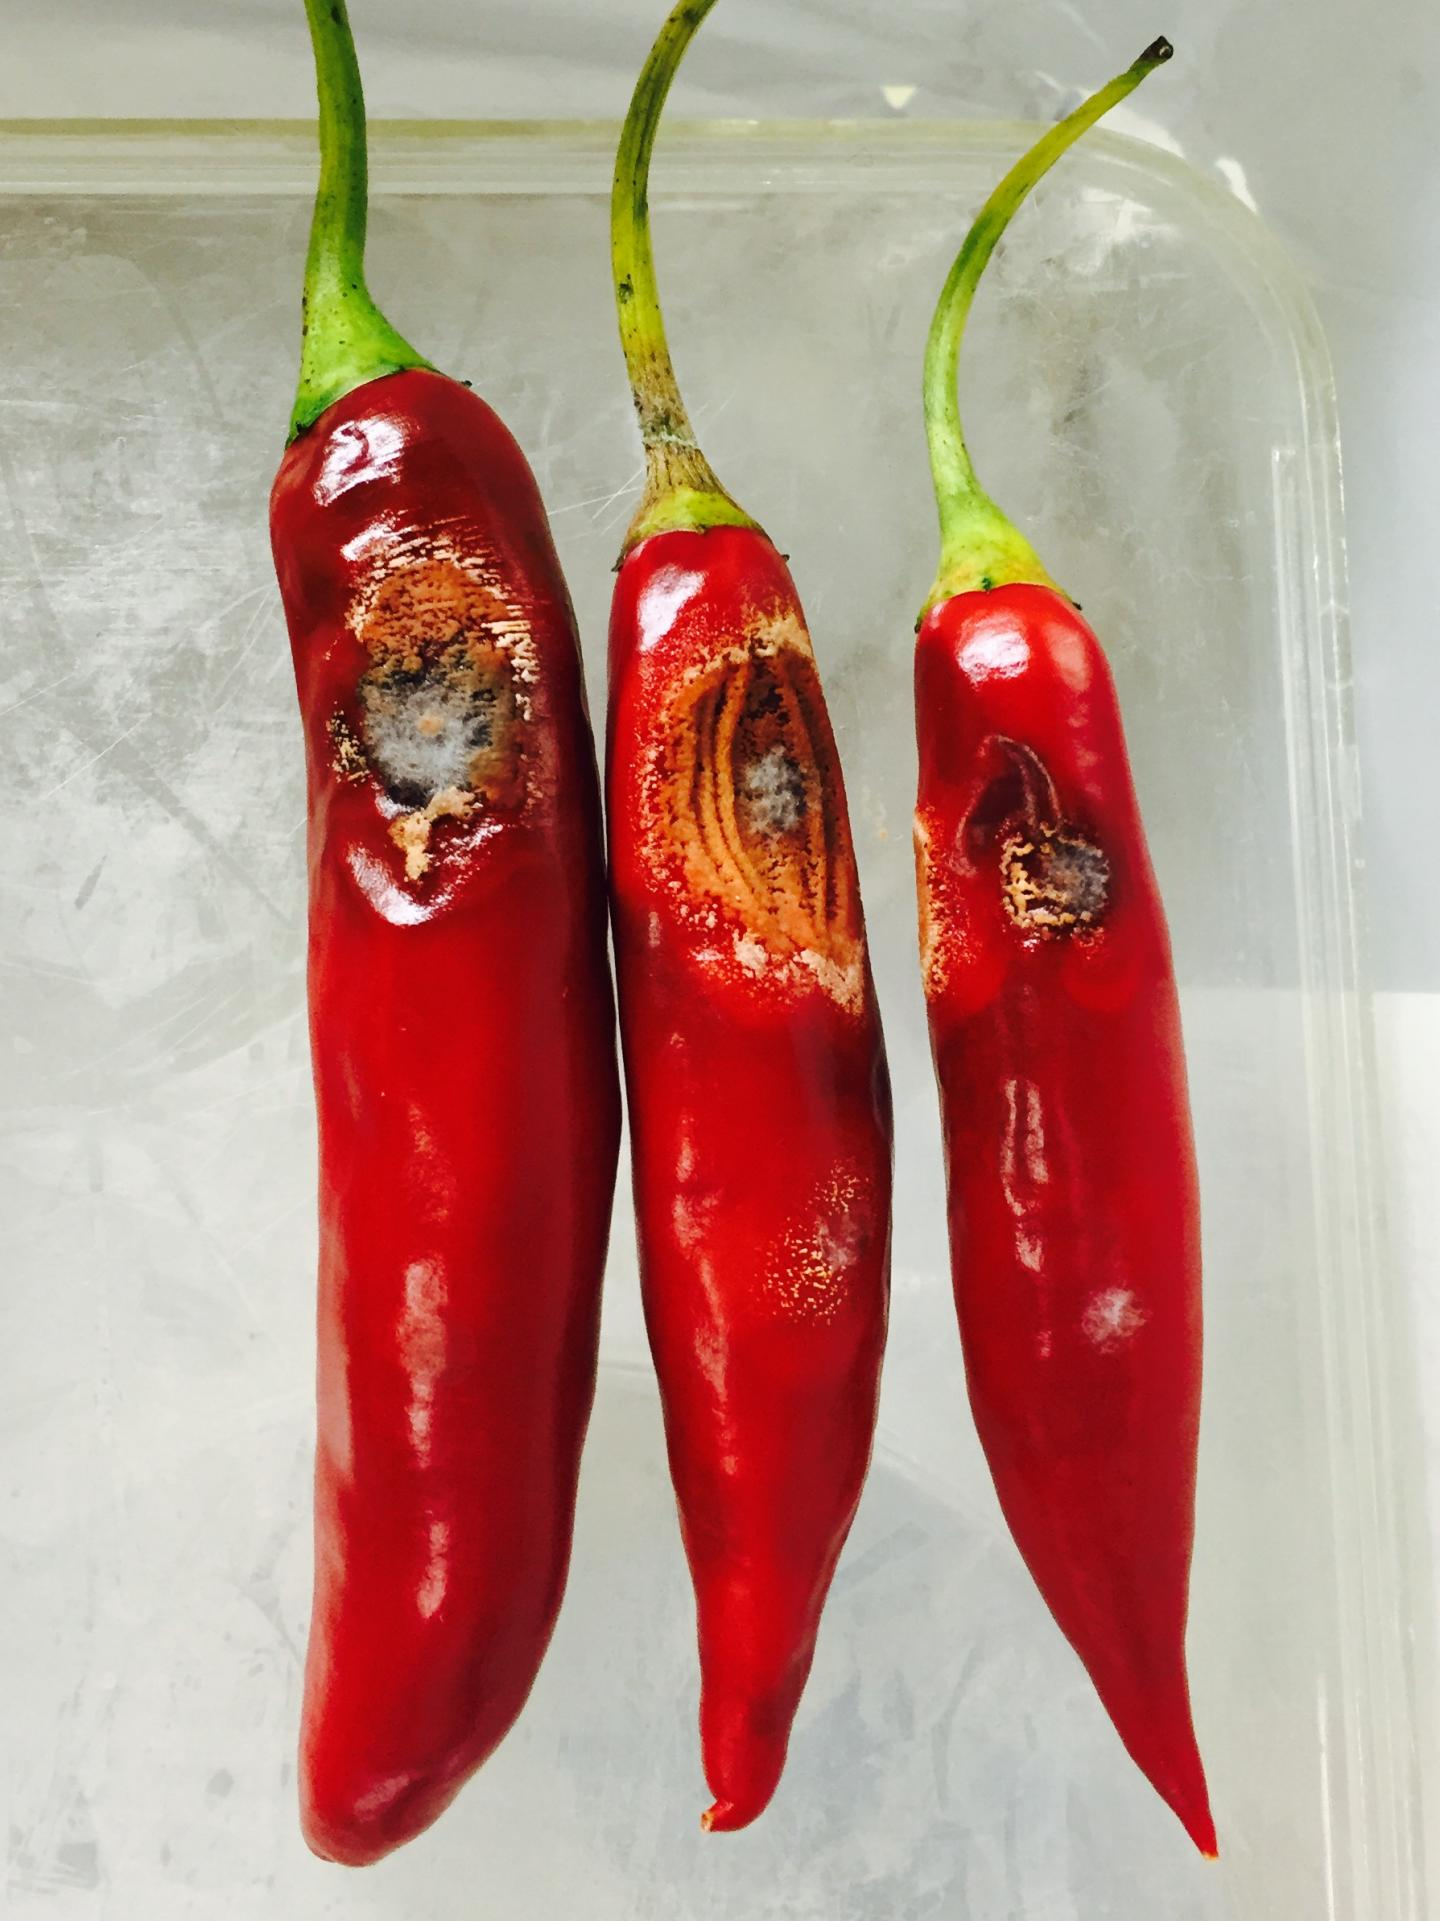 IMAGE  - 121403 web 3 - New chili pathogens discovered in Australia